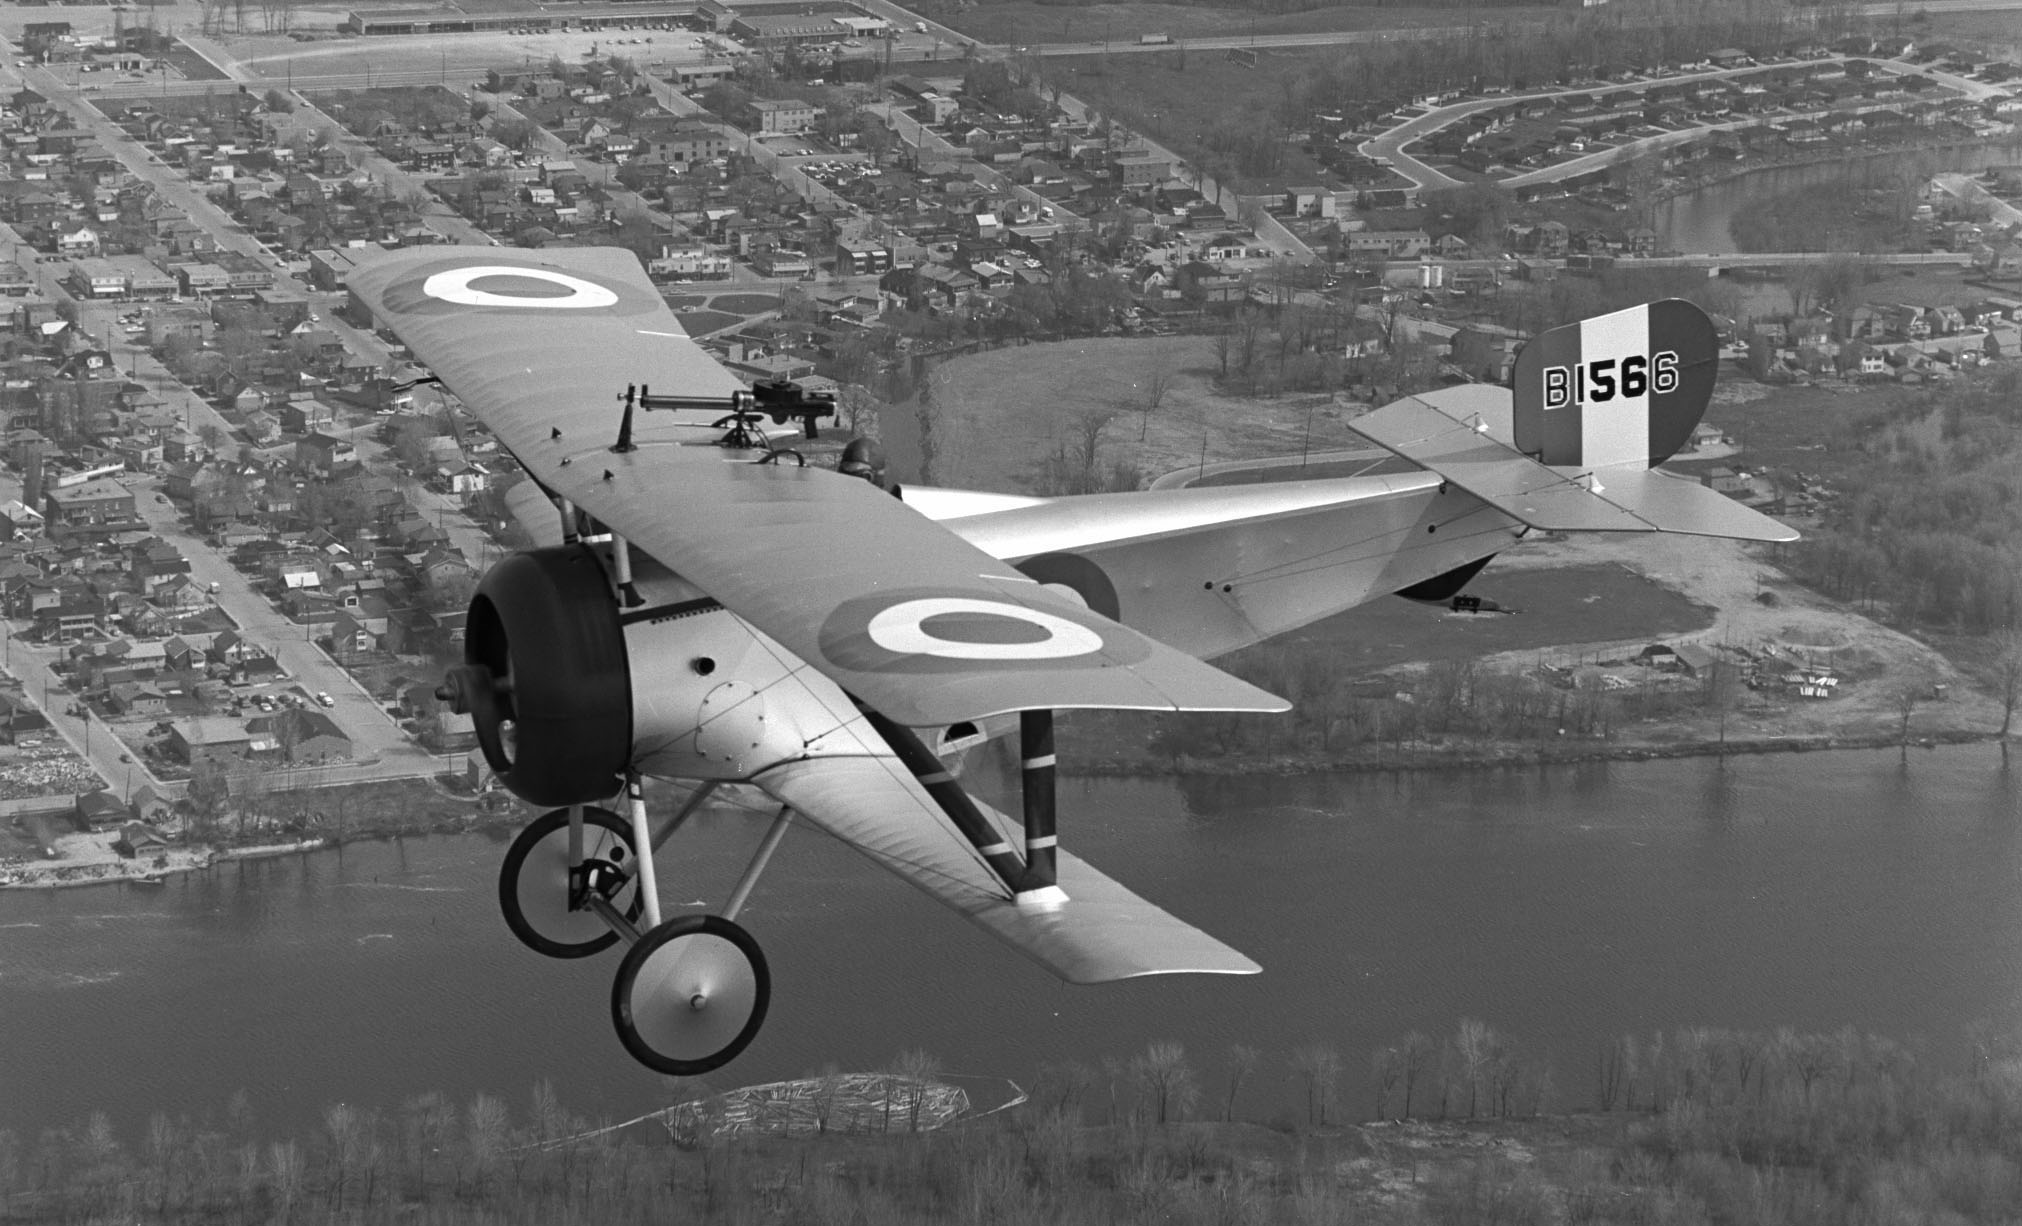 The replica Nieuport 17, B1566, in flight, circa 1967. PHOTO: DND Archives, CF67-375